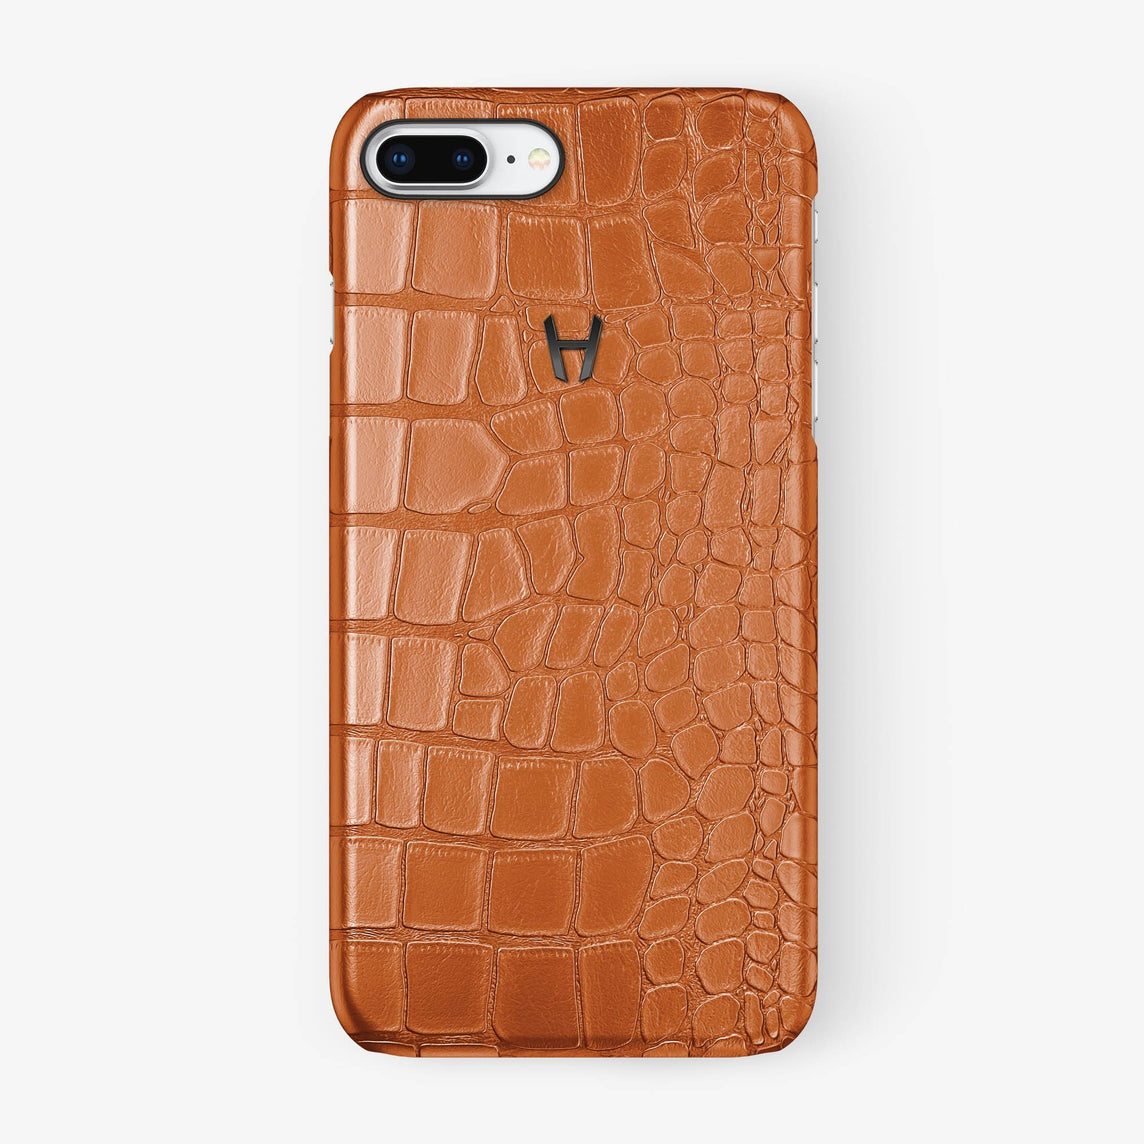 Alligator [iPhone Case] [model:iphone-7p-8p-case] [colour:orange] [finishing:black] - Hadoro